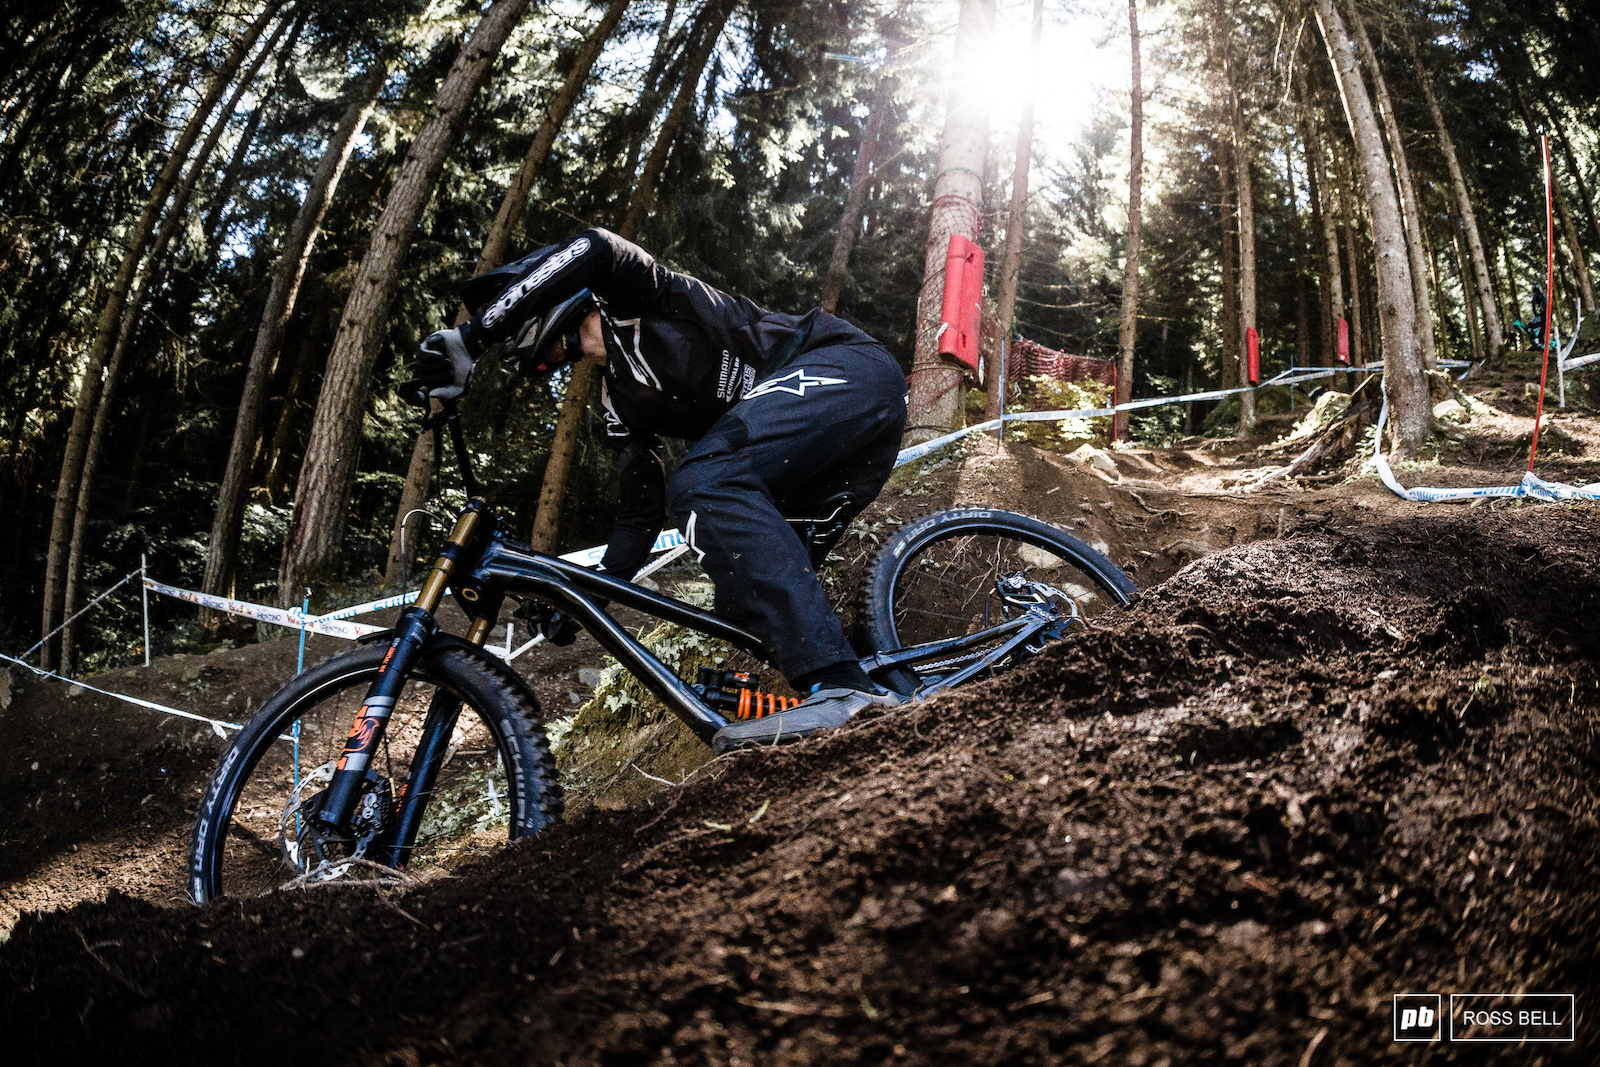 Matt Simmonds is back on a downhill track after switching his focus to enduro he qualified safely in 19th.